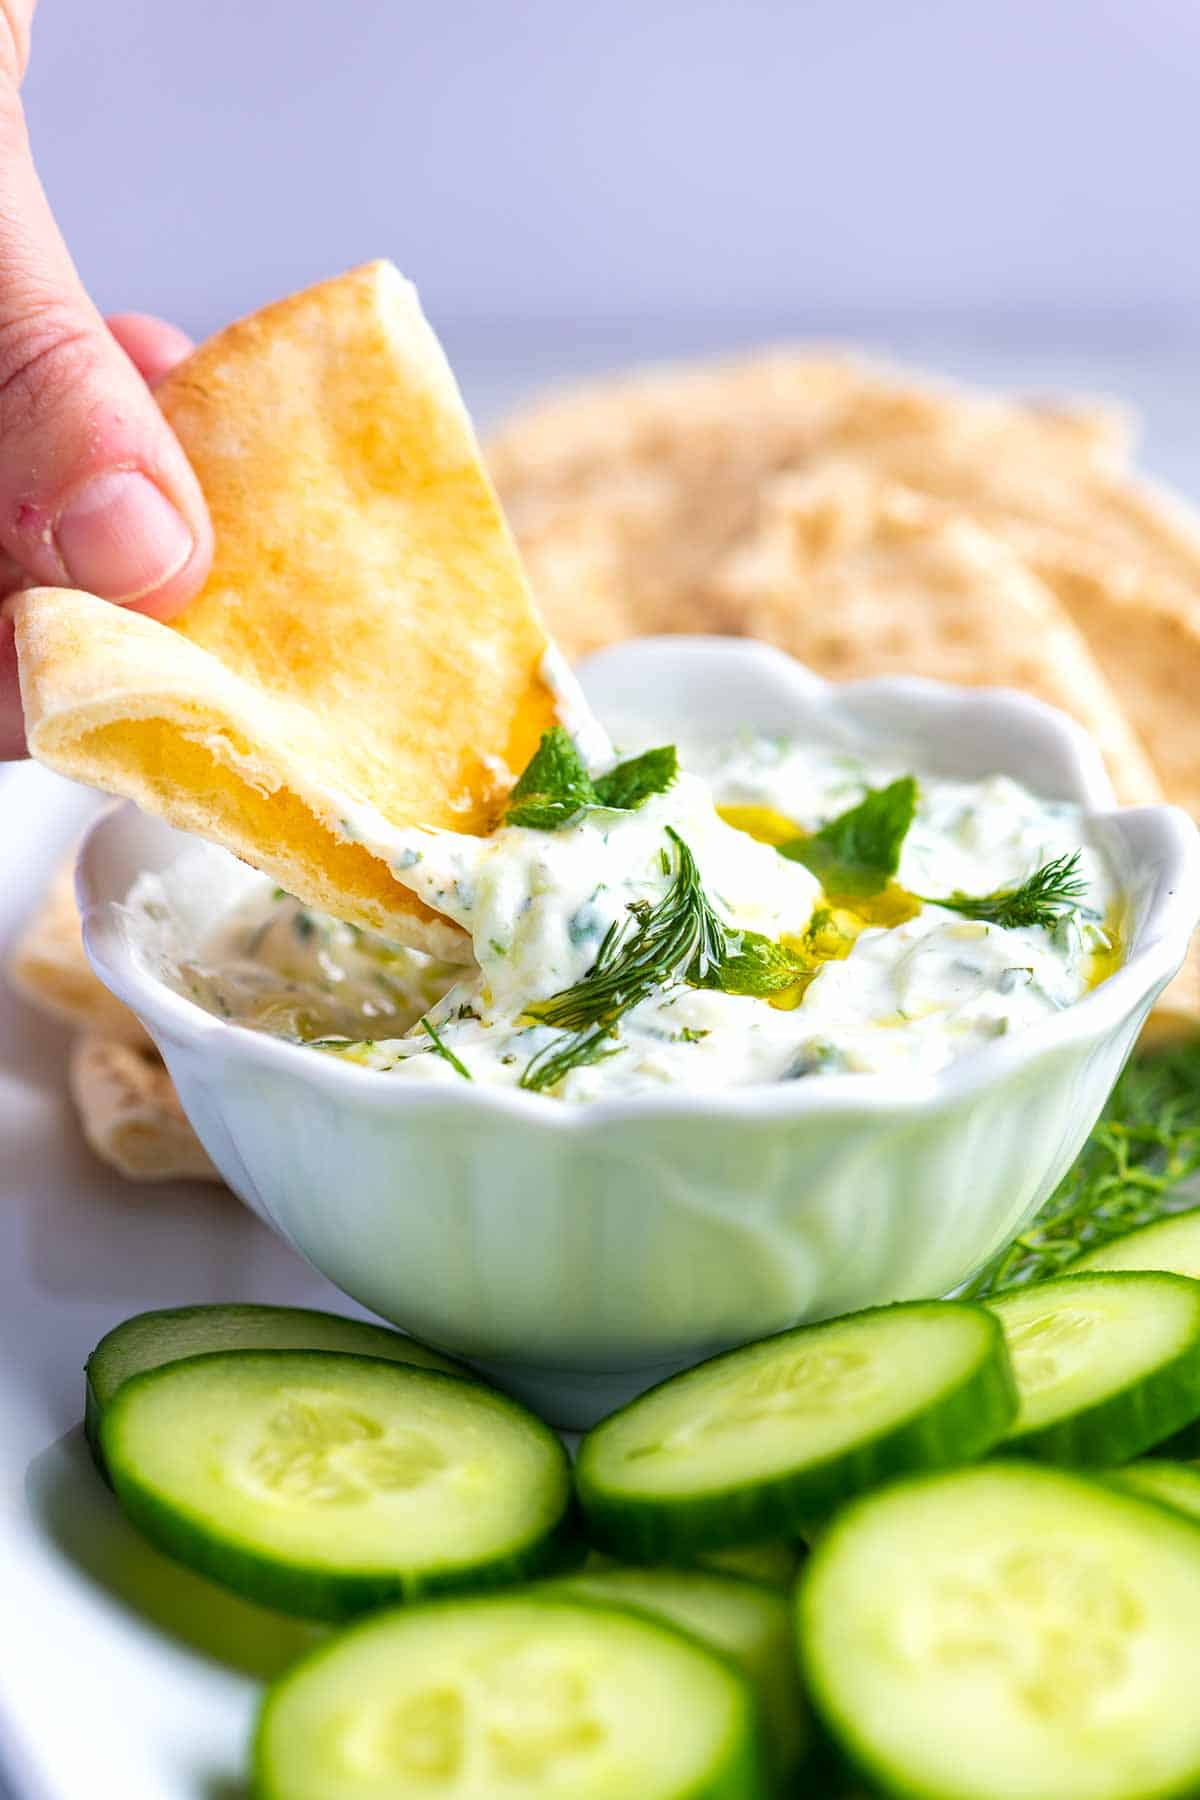 Tzatziki is a creamy, delicious, and simple sauce made with cucumber, yogurt, and fresh herbs.